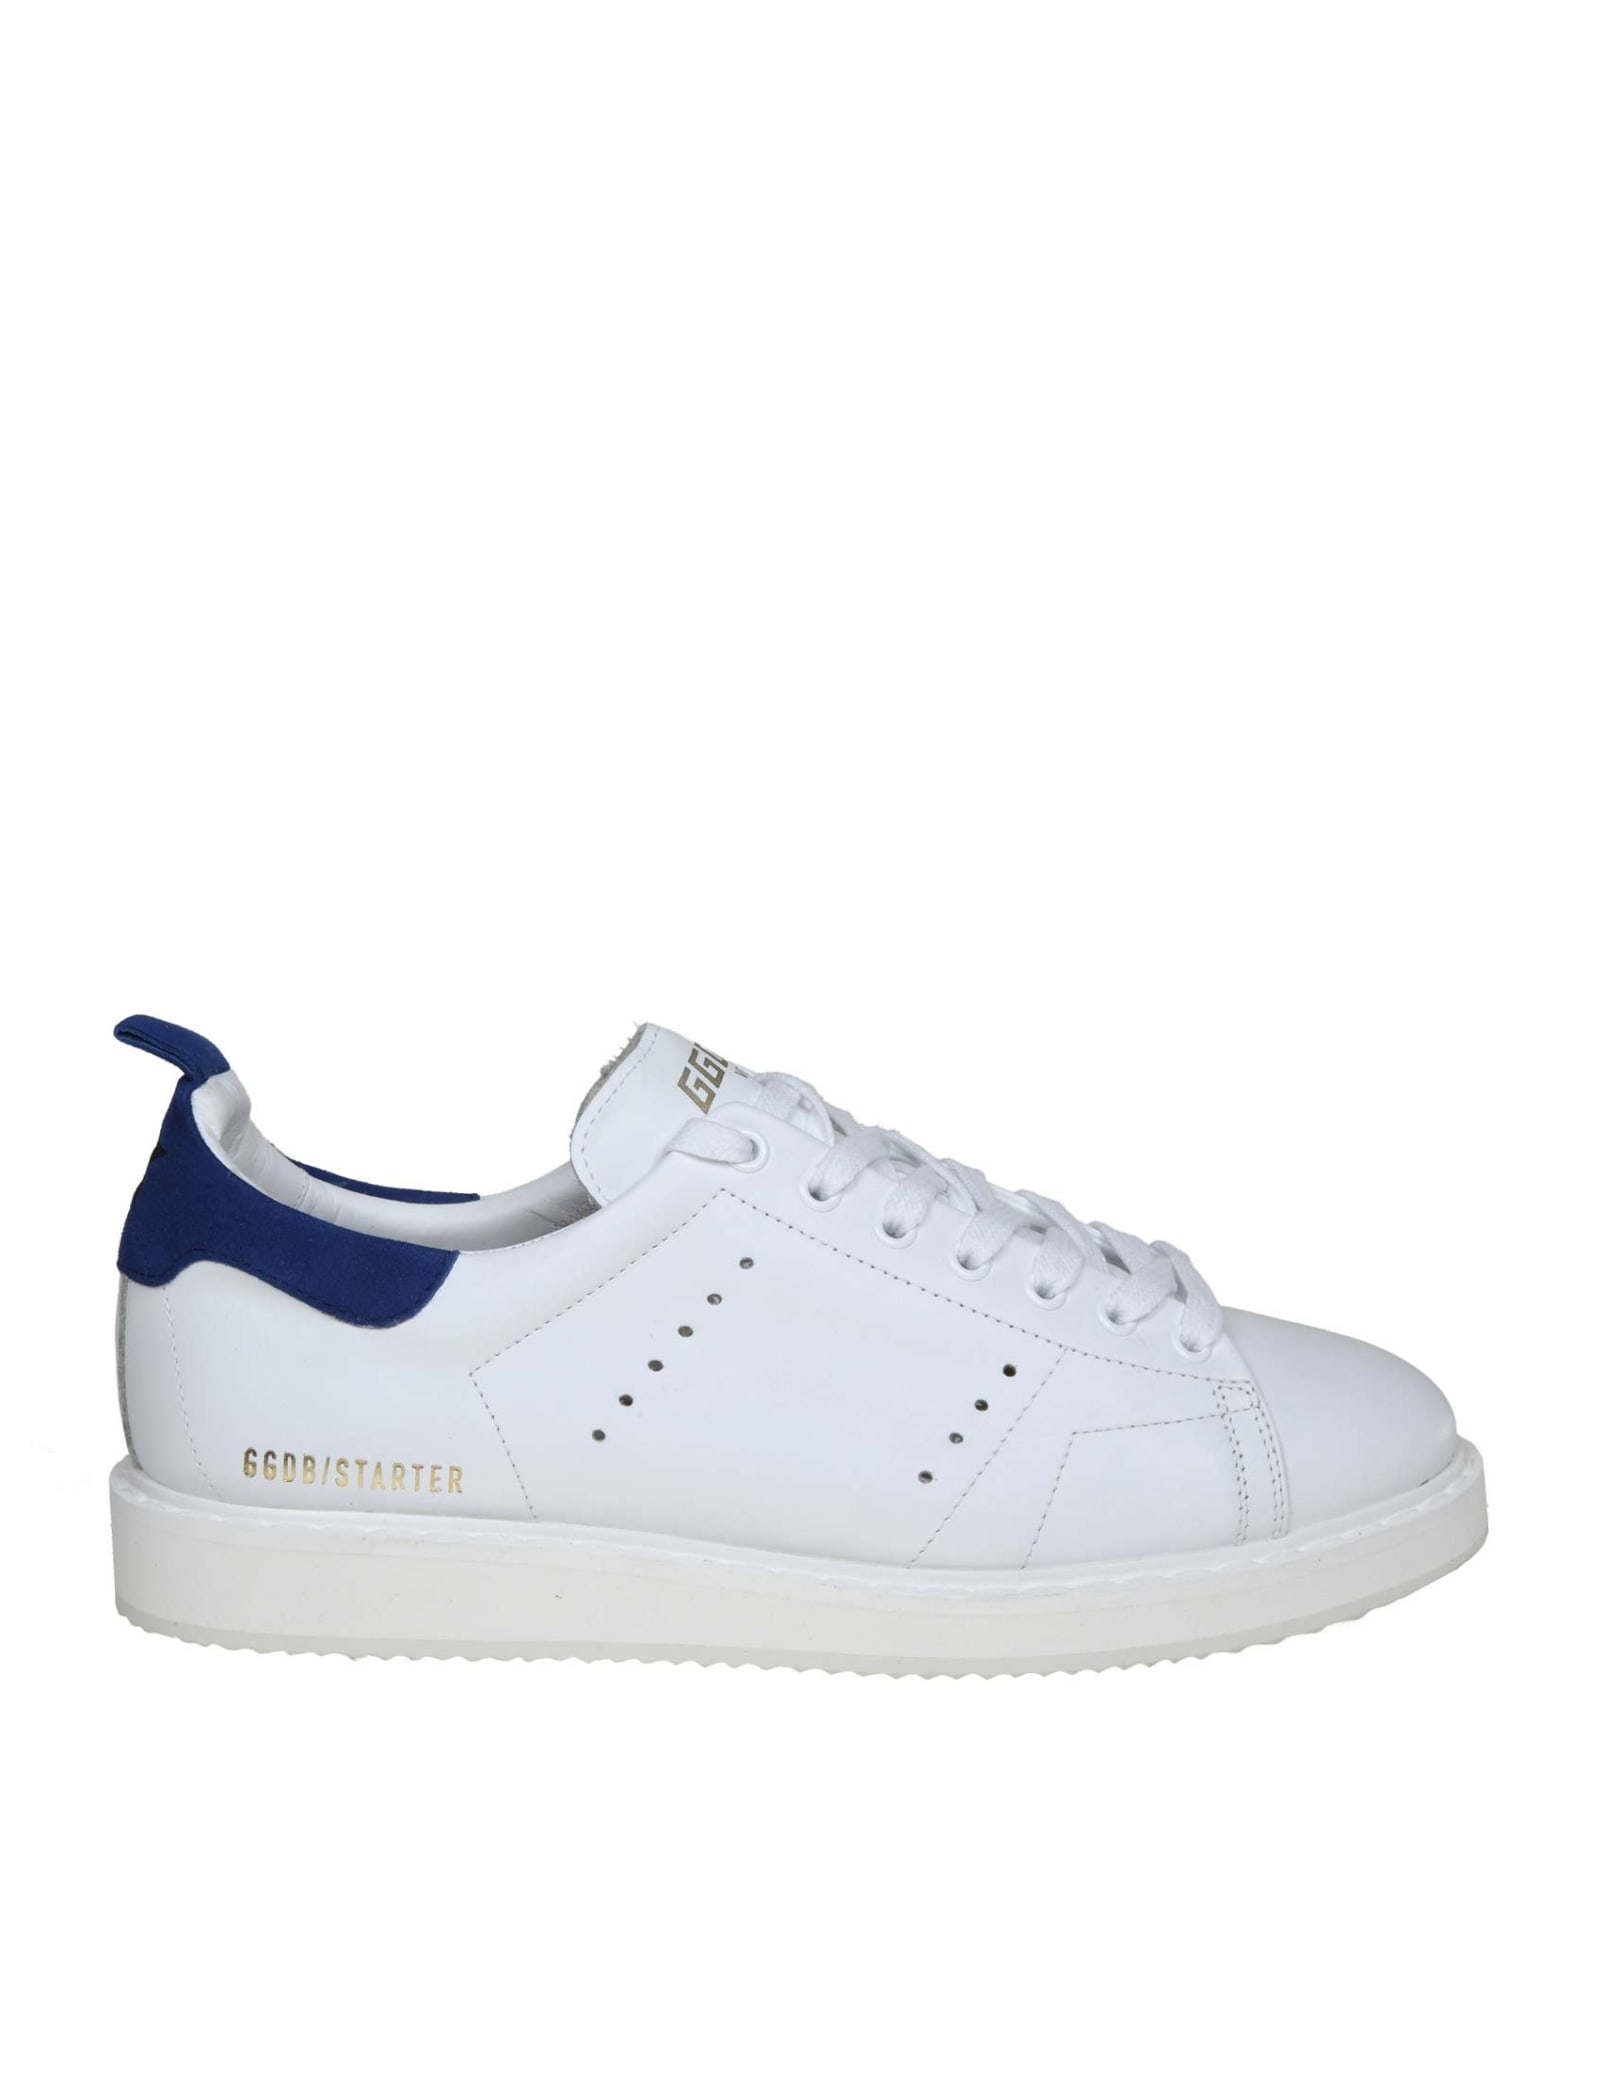 141172c026 Golden Goose Sneakers Starter In White Leather